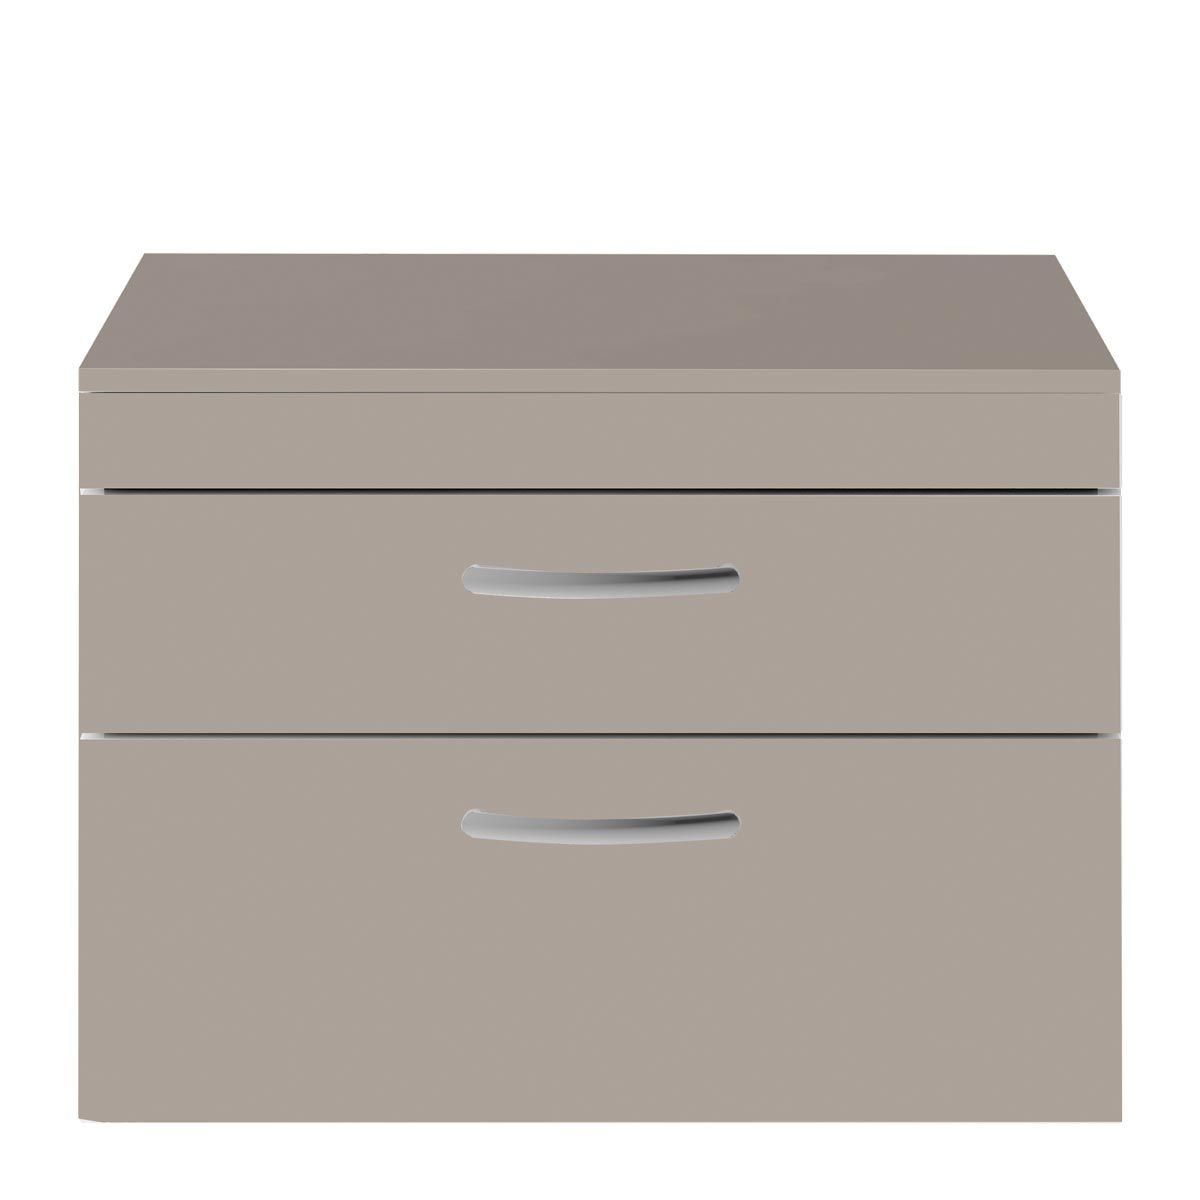 Nuie Athena Stone Grey 2 Drawer Wall Hung Vanity Unit with 18mm Worktop 800mm